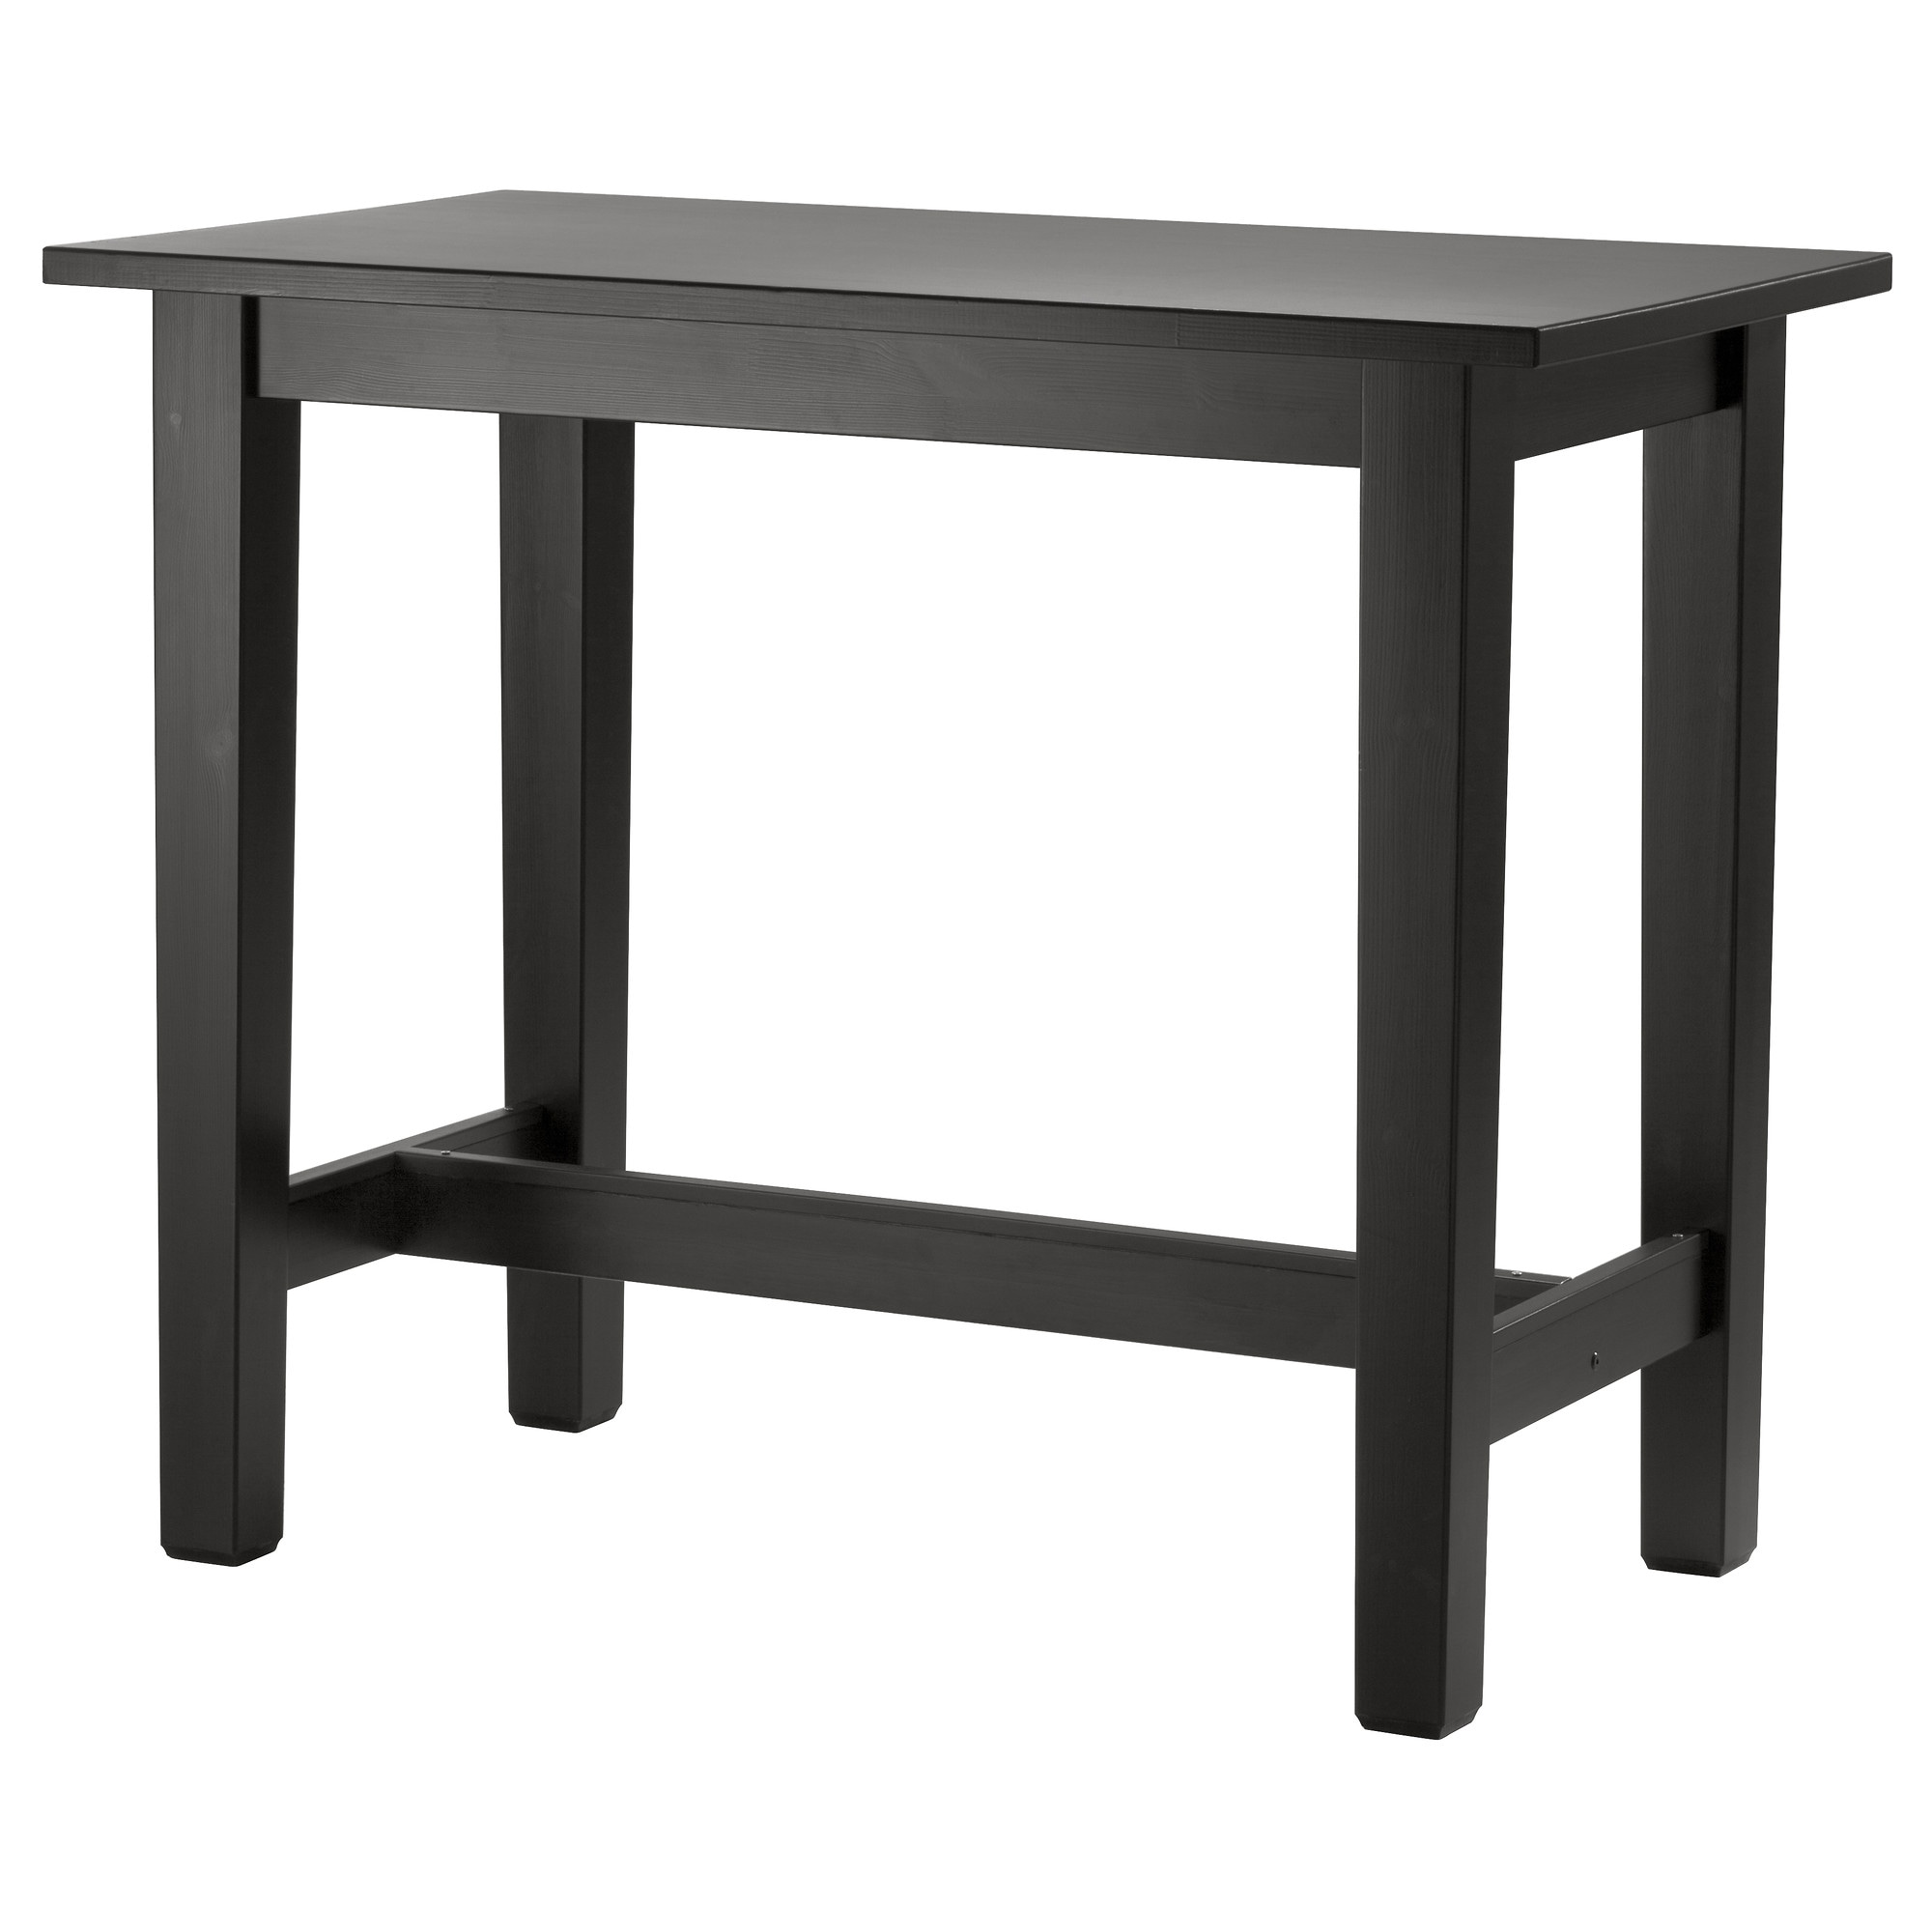 "STORN""S Bar table IKEA"